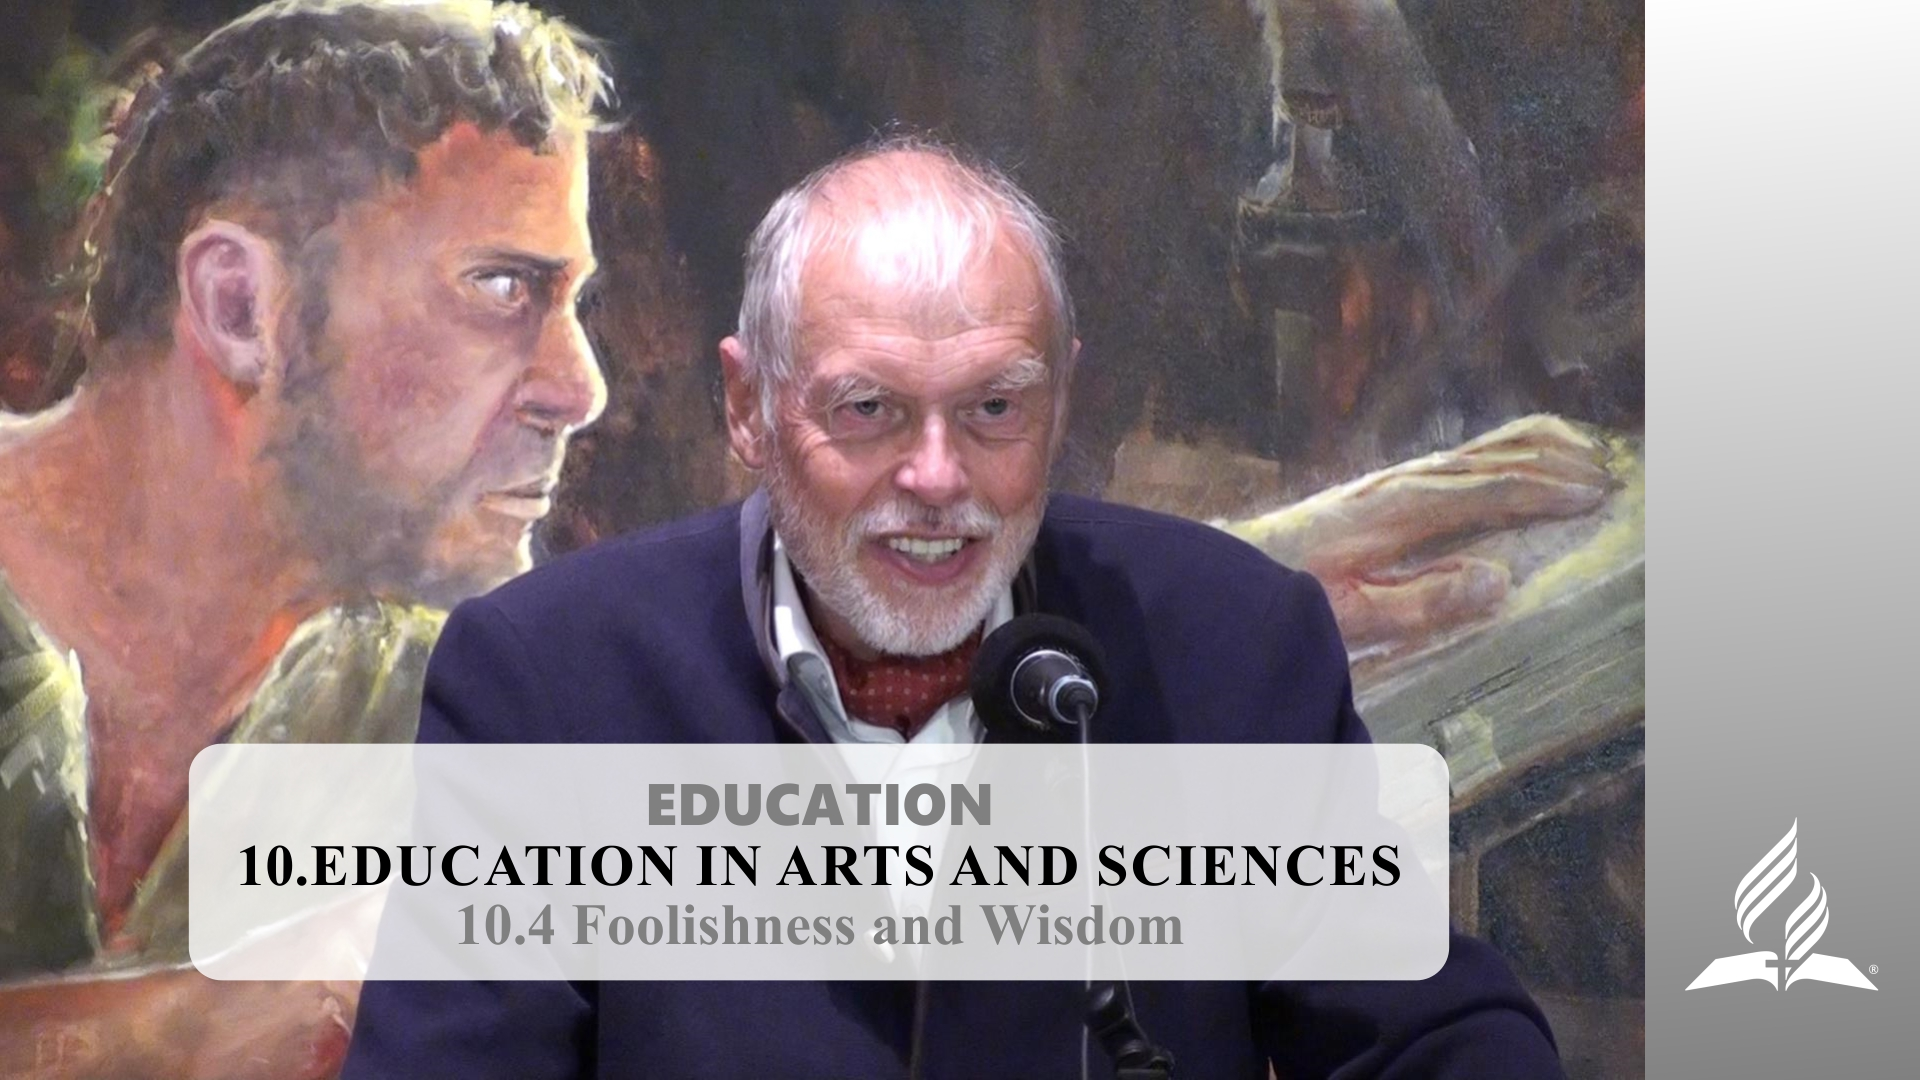 10.4 Foolishness and Wisdom – EDUCATION IN ARTS AND SCIENCES | Pastor Kurt Piesslinger, M.A.